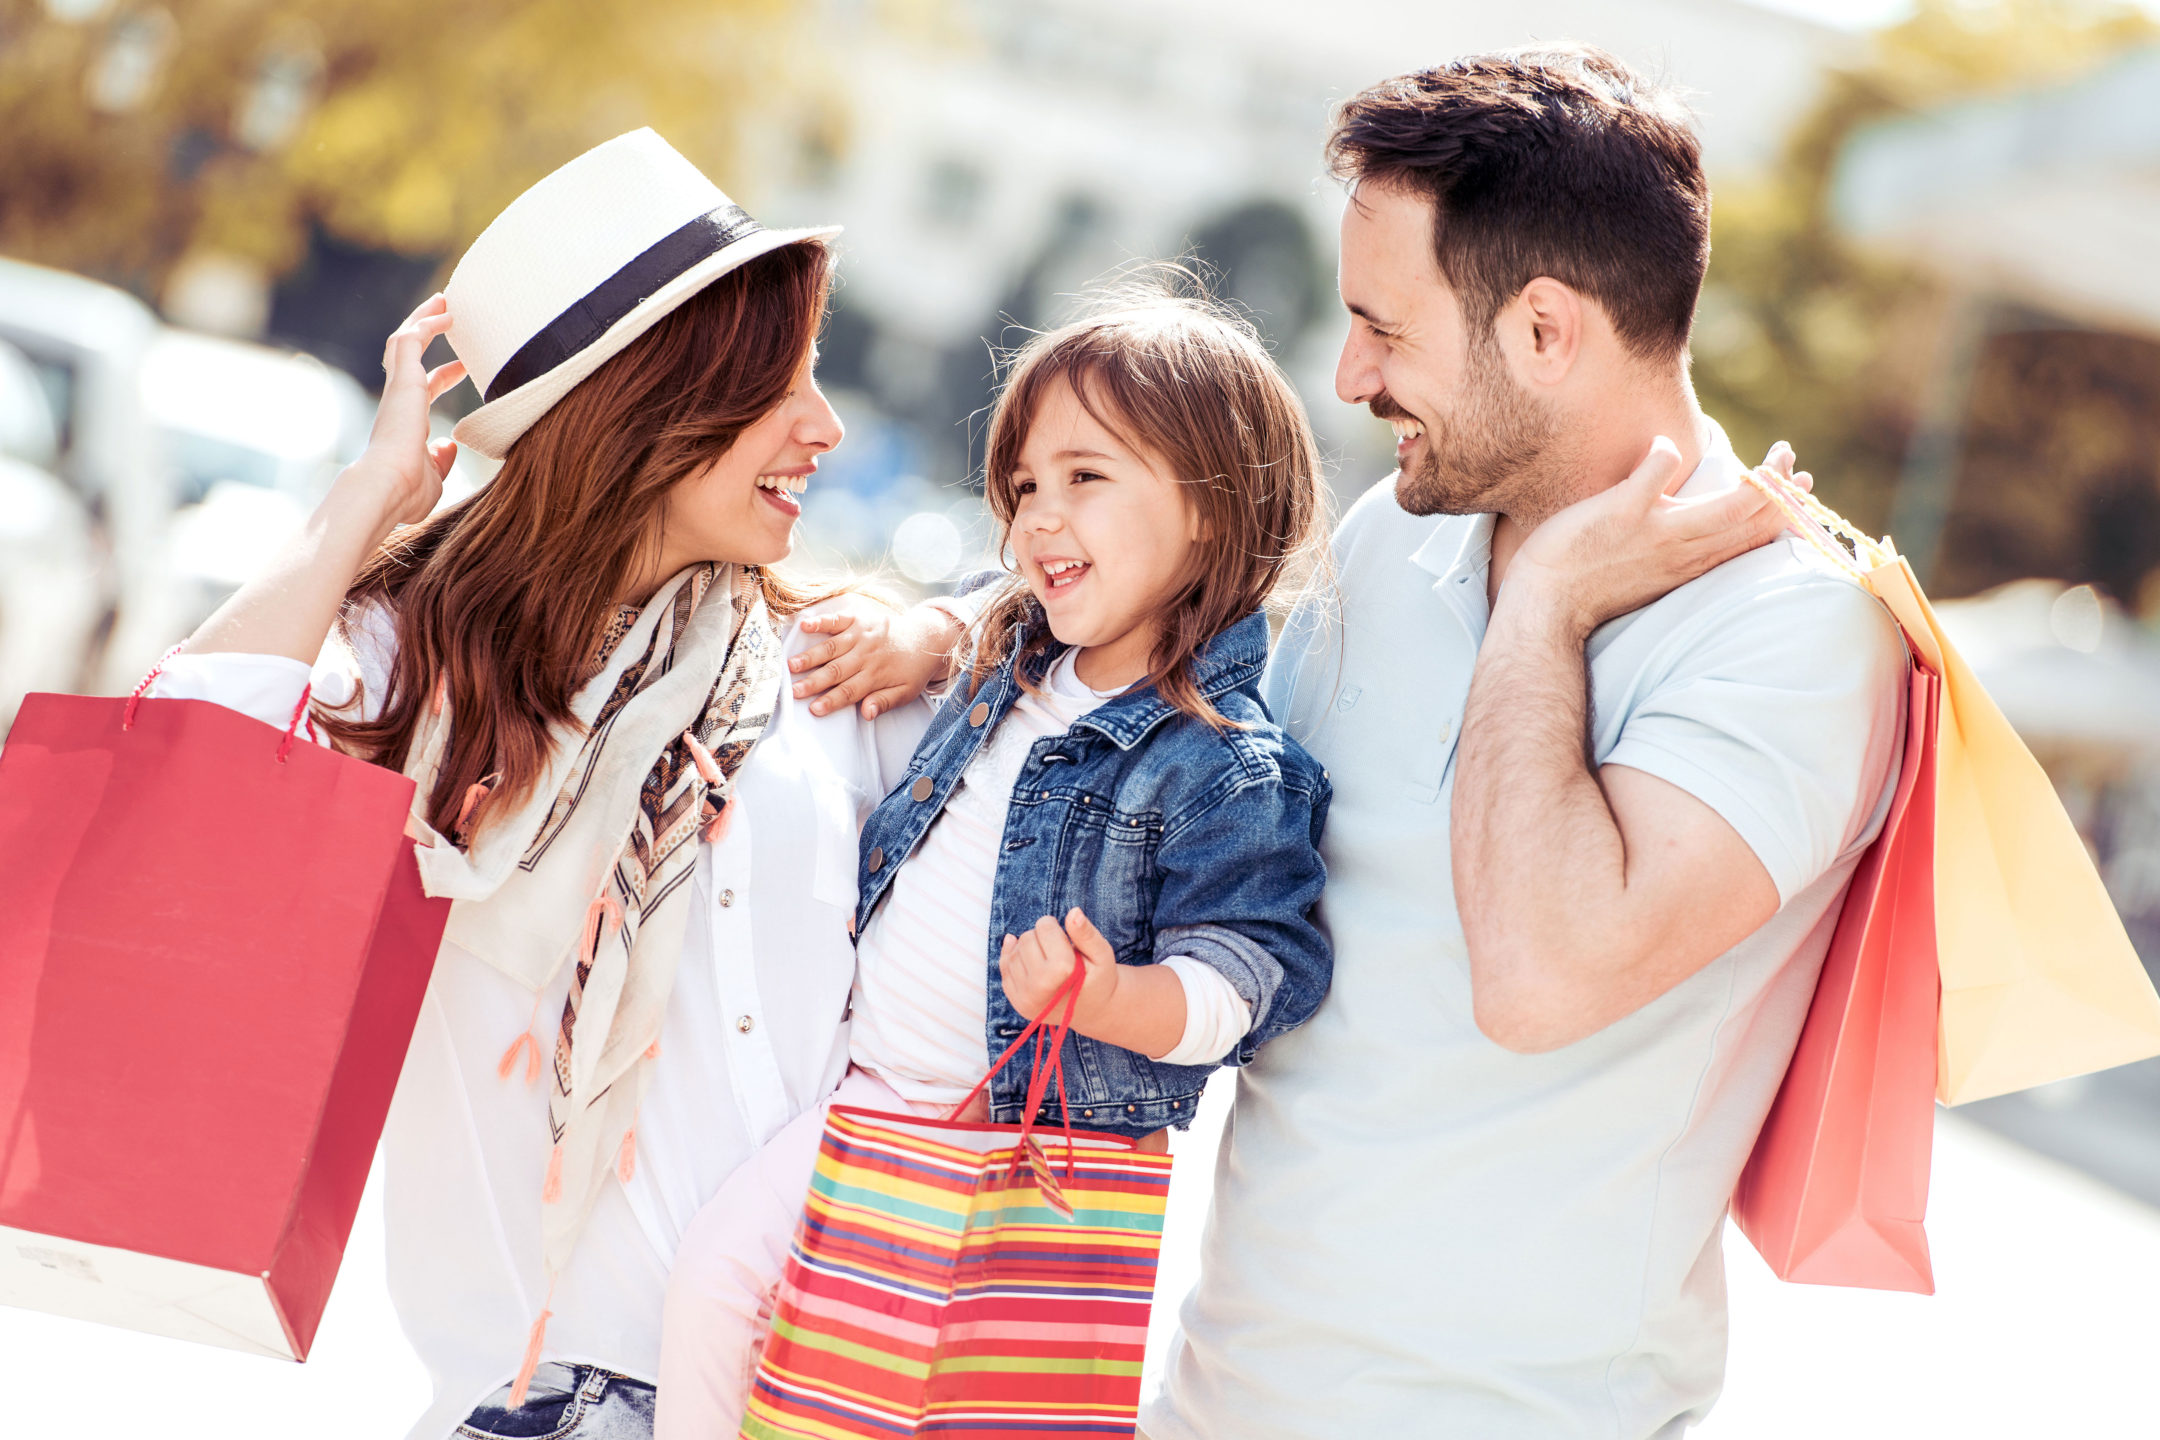 a young family smiling and shopping together with shopping bags